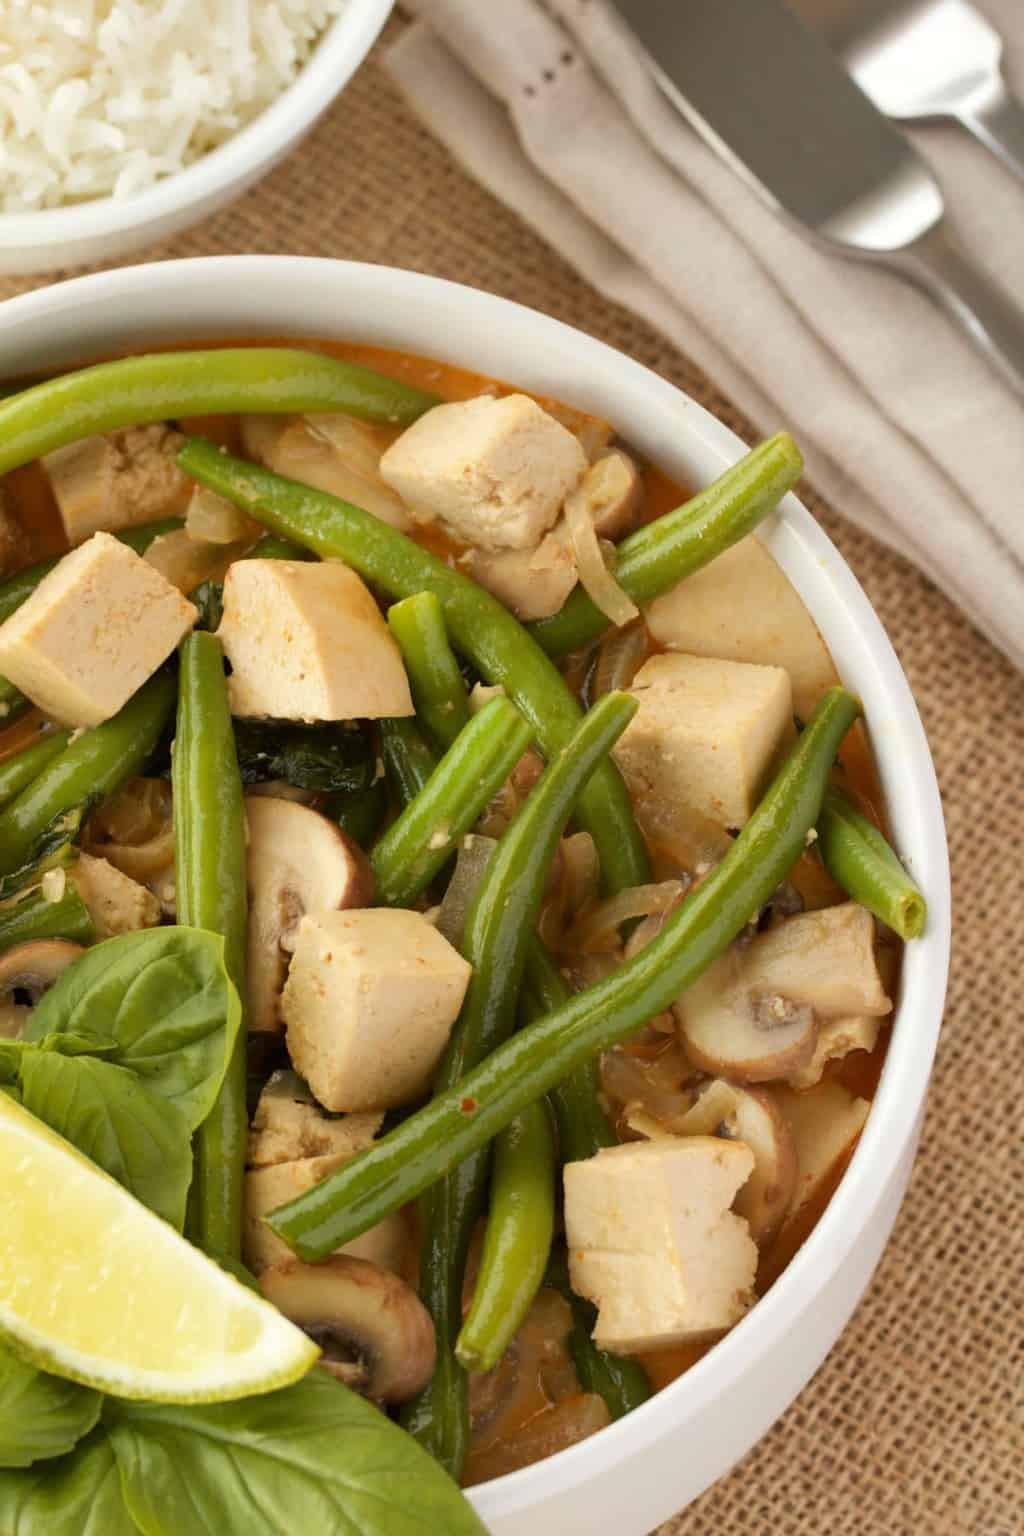 Thai red curry with green beans and tofu in a white bowl, a napkin and cutlery on the side.